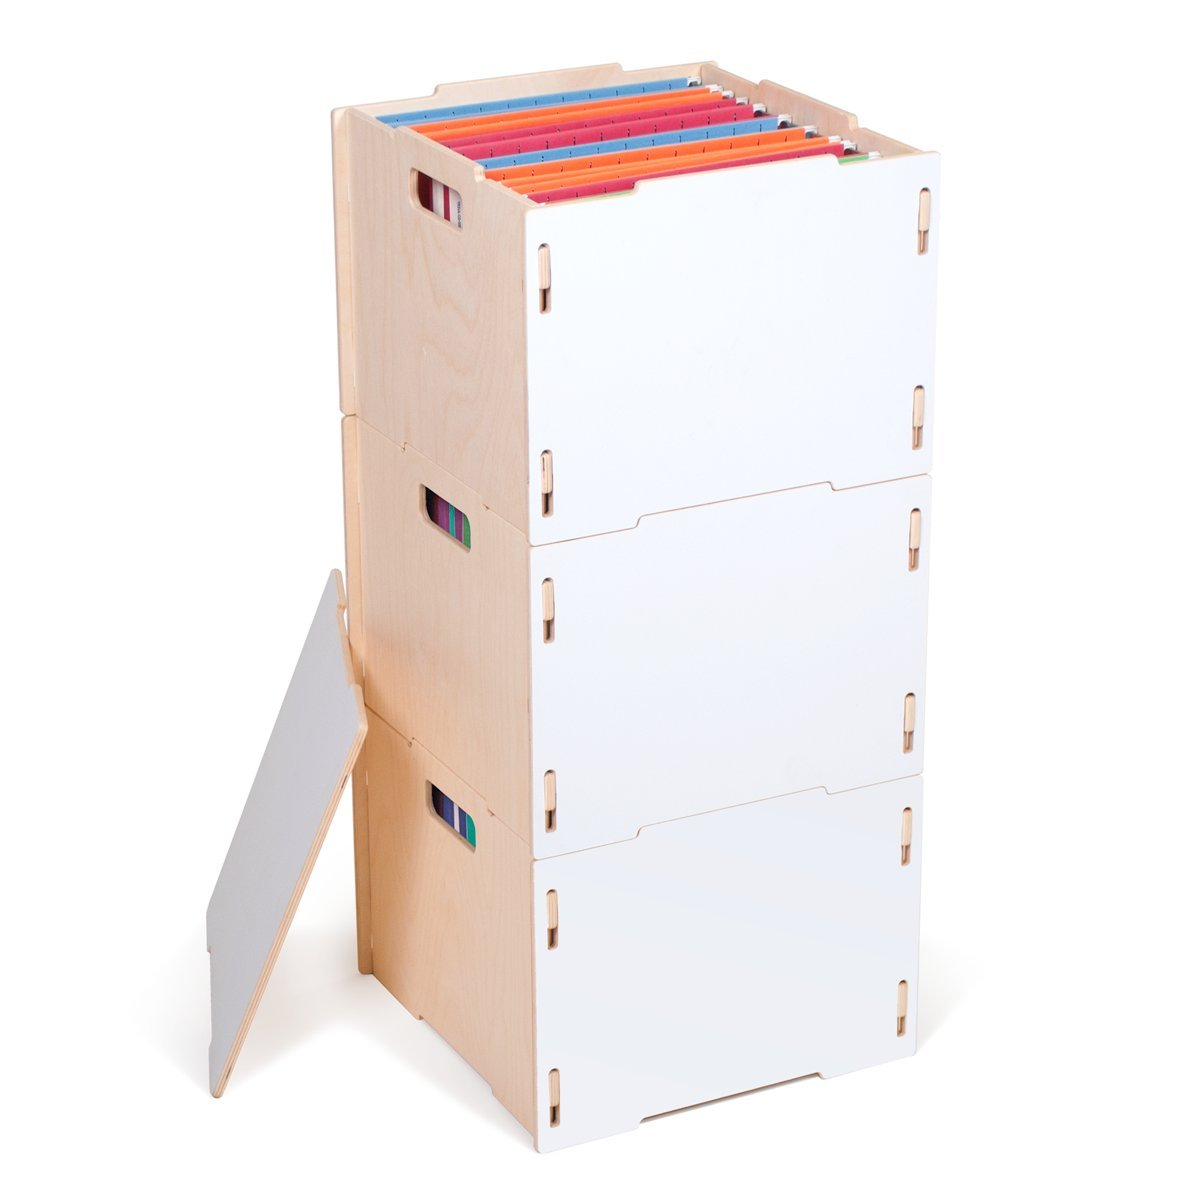 Three Modern White Wooden Hanging File Boxes, American Made - By Sprout